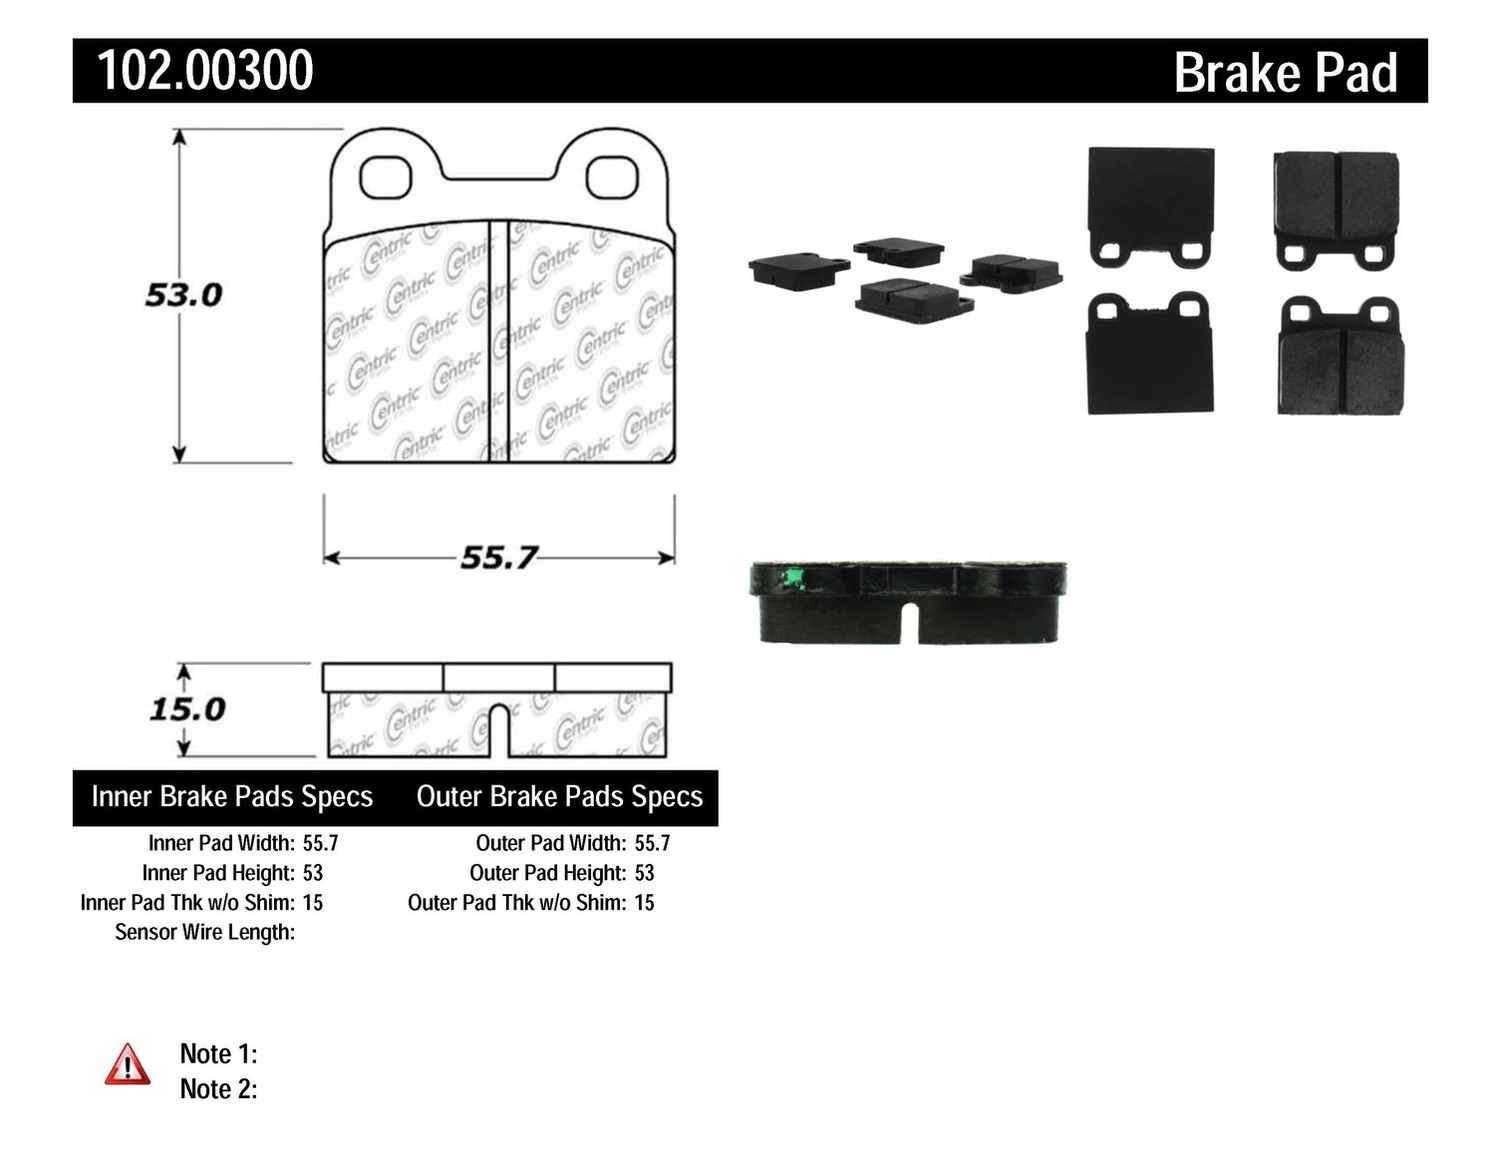 C-TEK BY CENTRIC - C-TEK Metallic Brake Pads (Rear) - CTK 102.00300